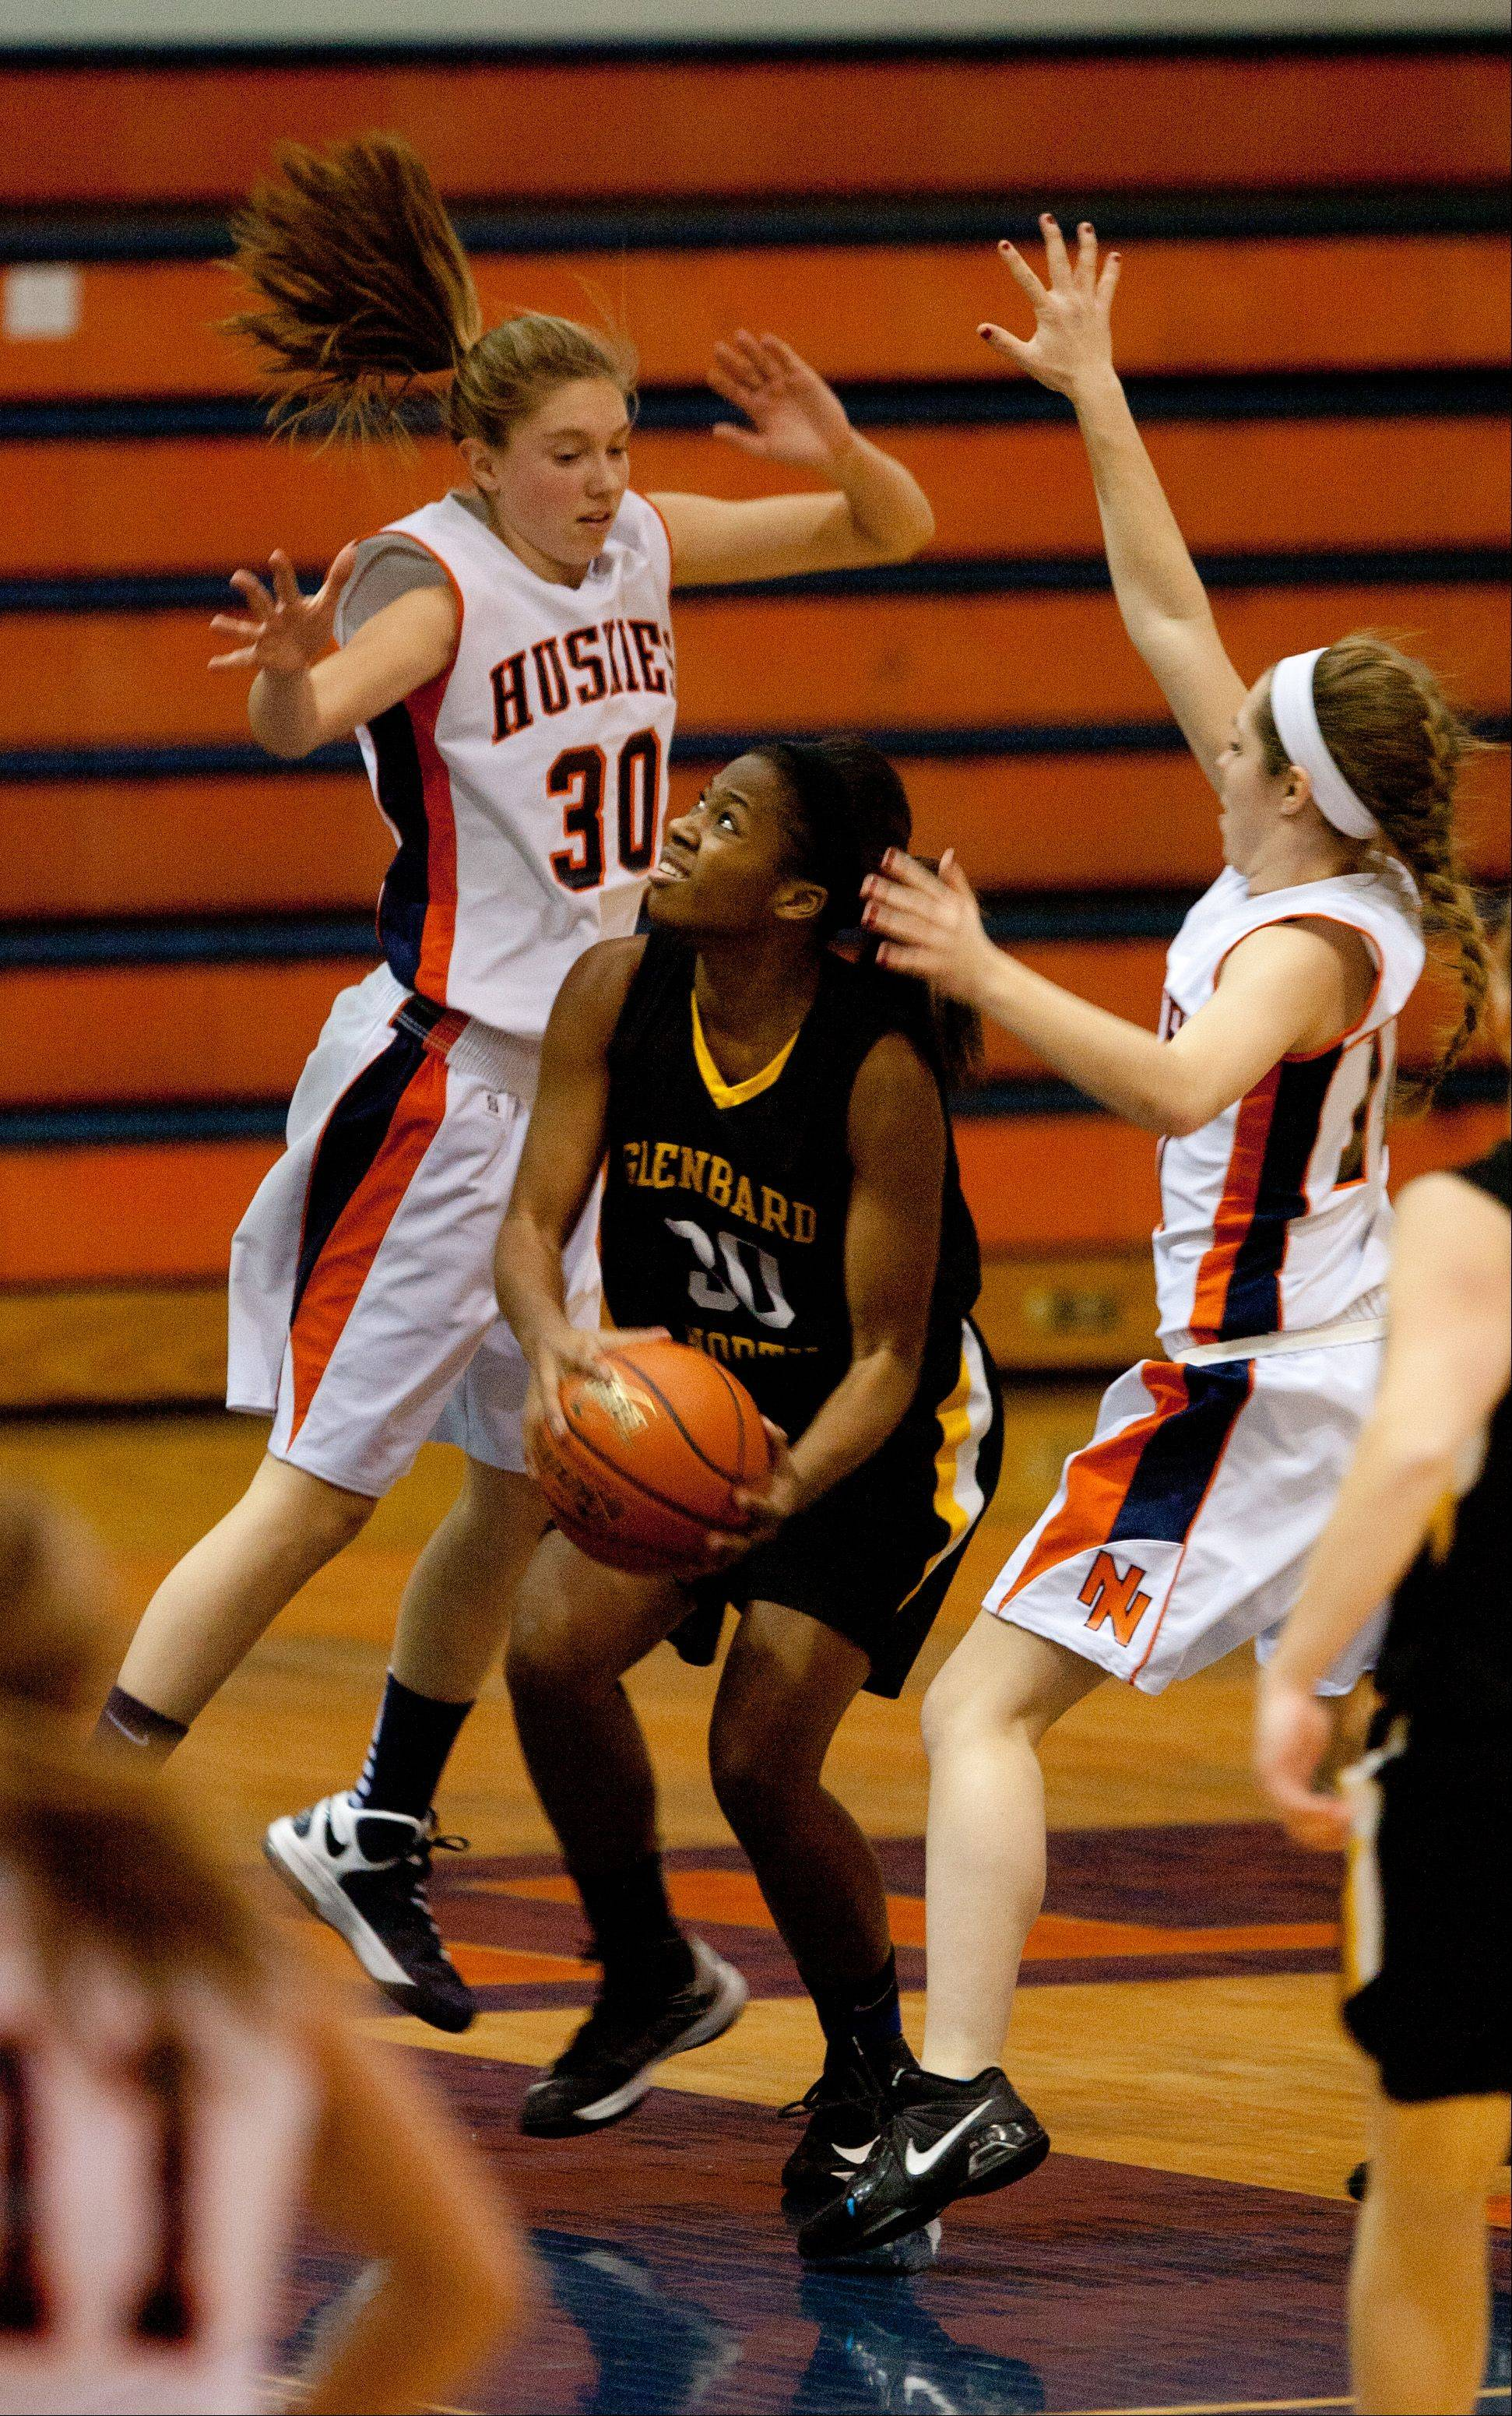 Glenbard North's, Laila Pickens, center, looks to shoot over Naperville North's Jenny Smith, 30, during Monday's game in Naperville.